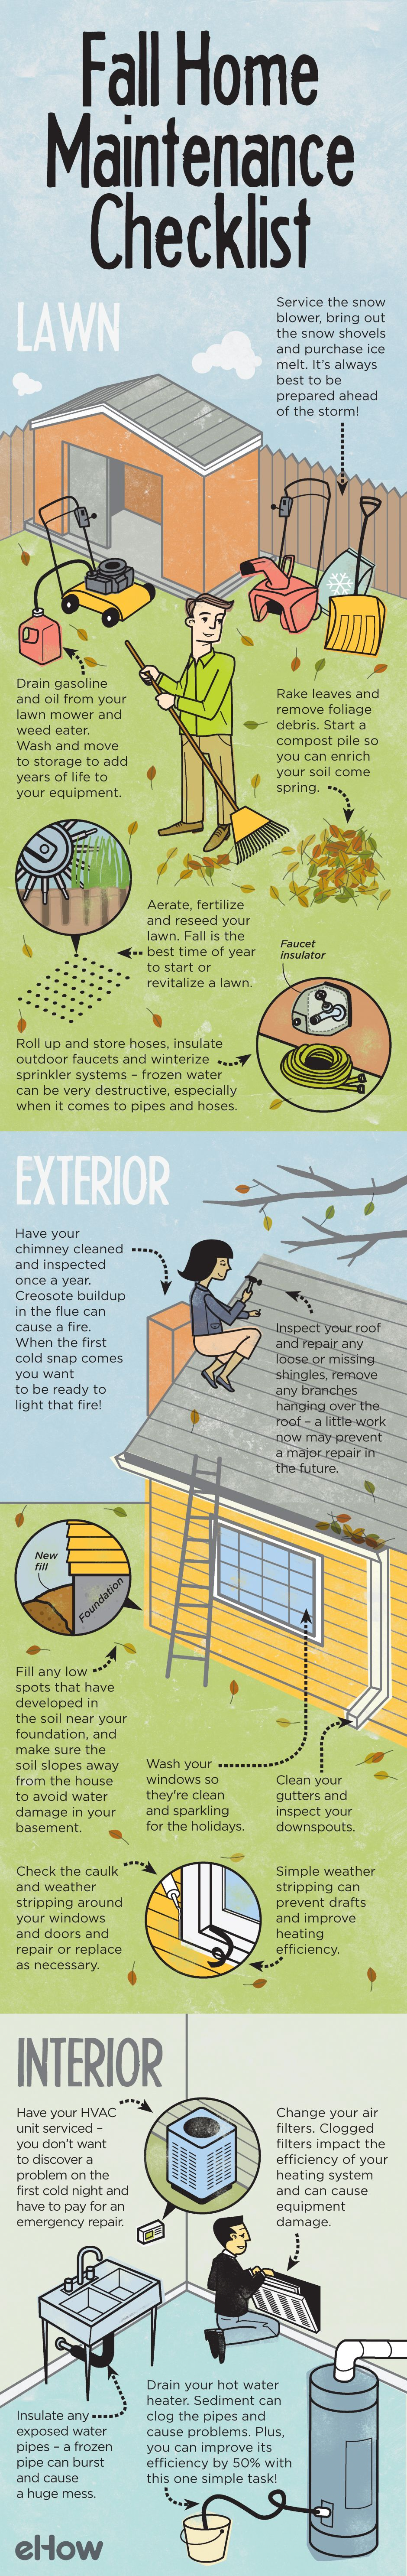 Fall Home Maintenance Tips fall home maintenance checklist | winter, cleaning and organizations